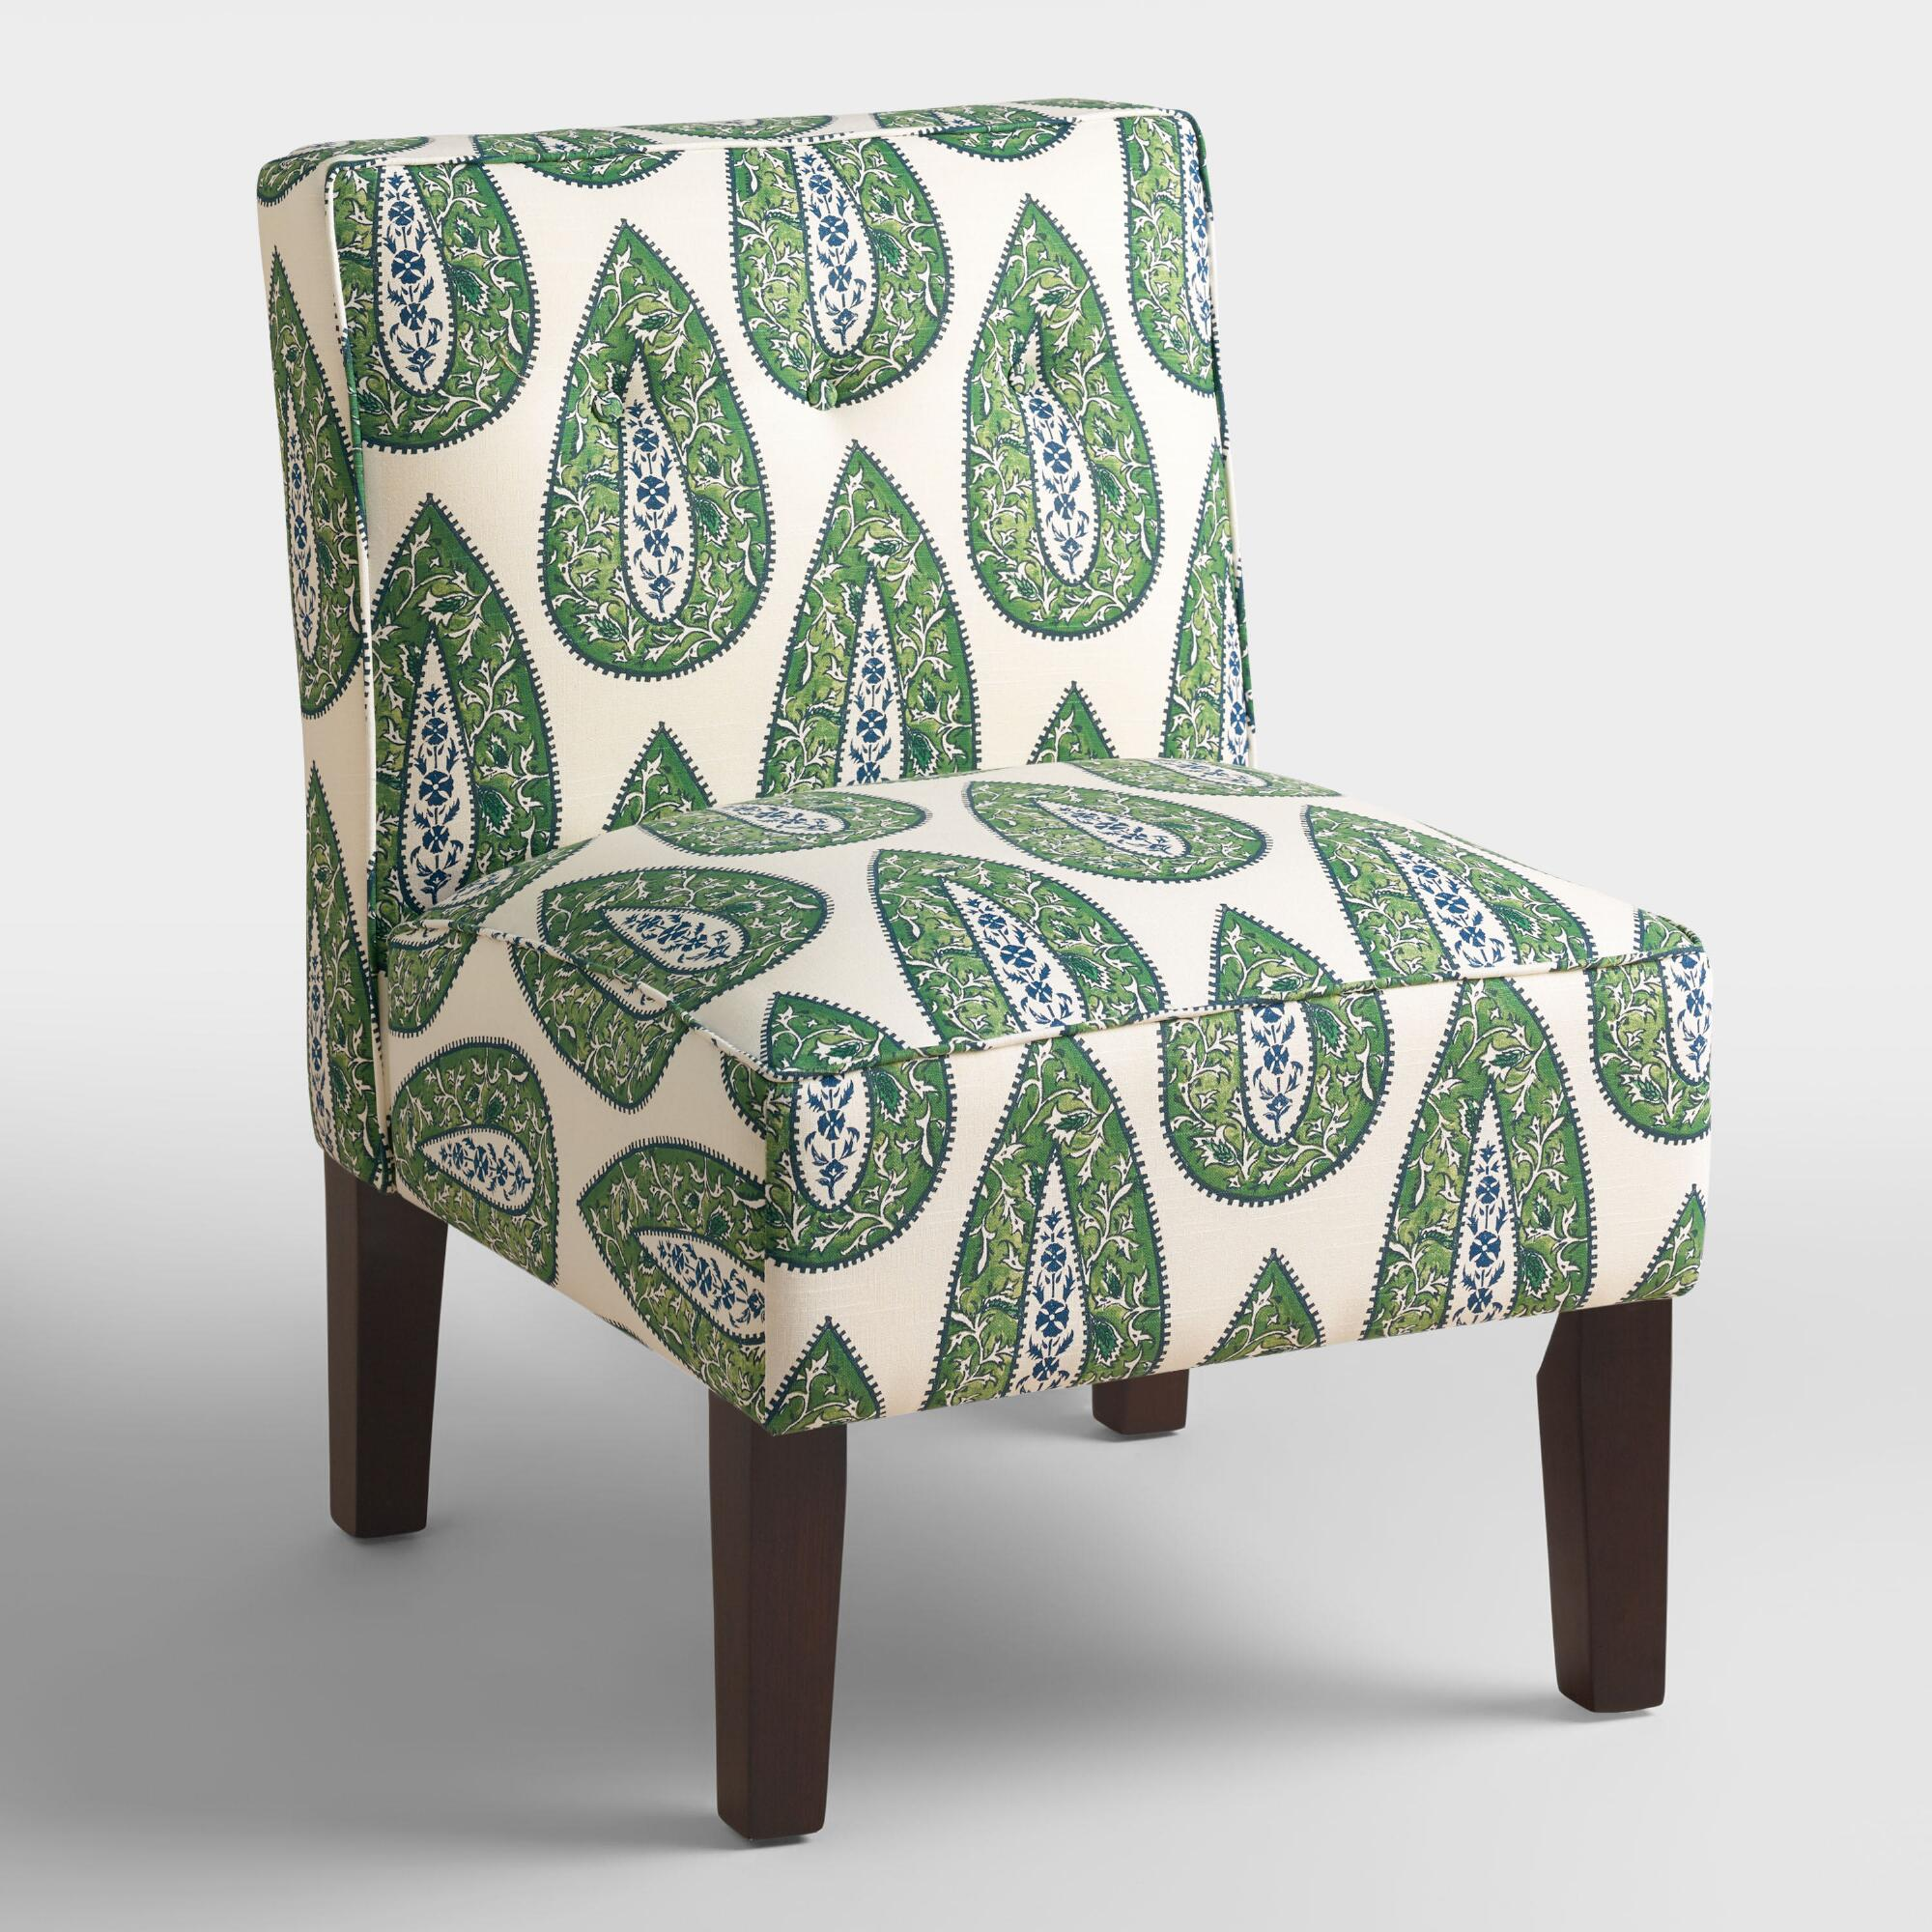 Bindi Randen Upholstered Chair with Wood Legs: Green - Fabric by World Market